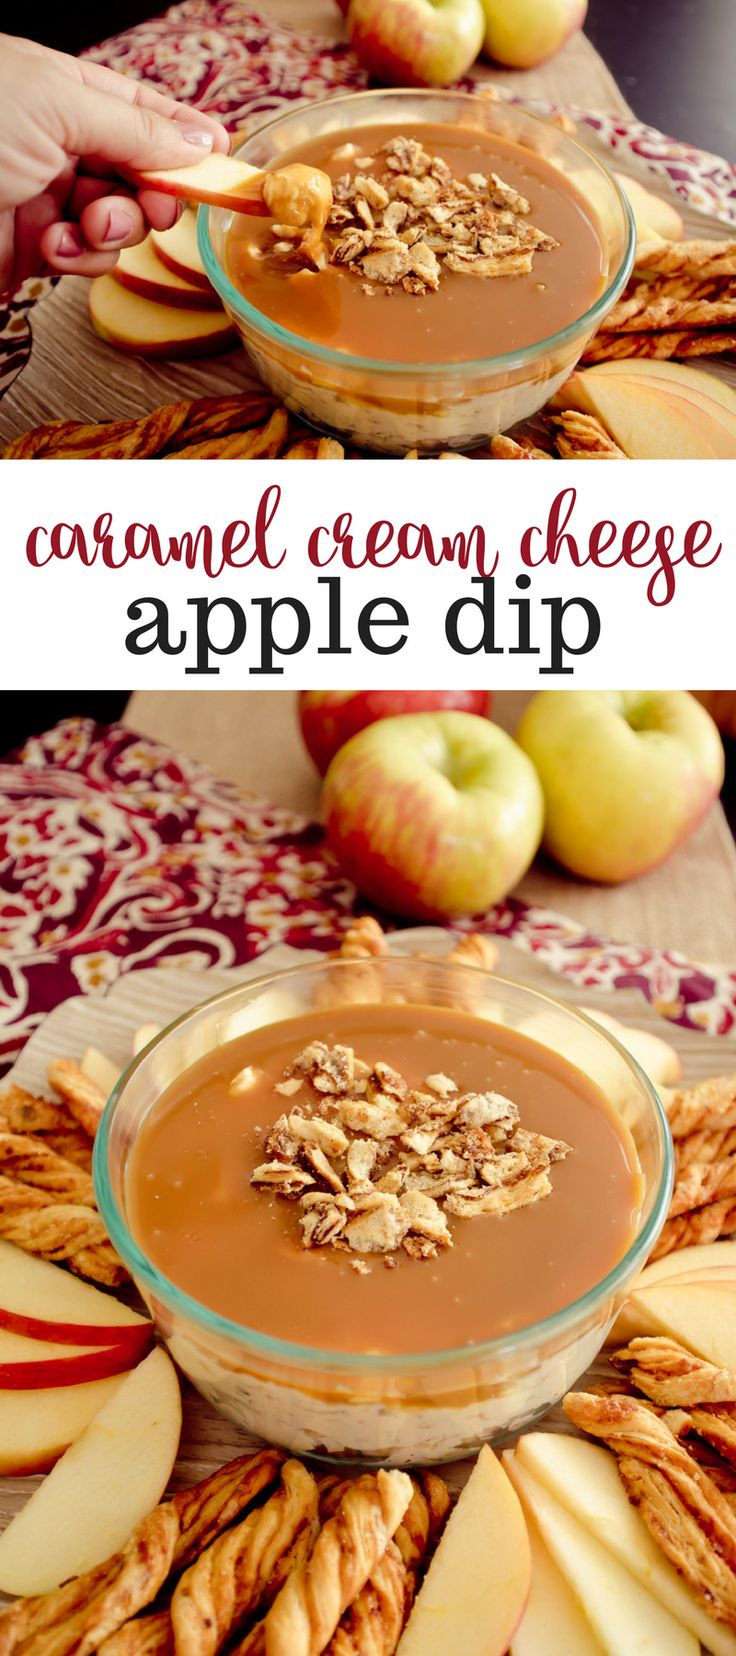 This sweet, creamy, crunchy dip is the perfect little treat to go with crisp apple slices, or John Wm. Macy's SweetSticks. #MomBlogTourFF AD